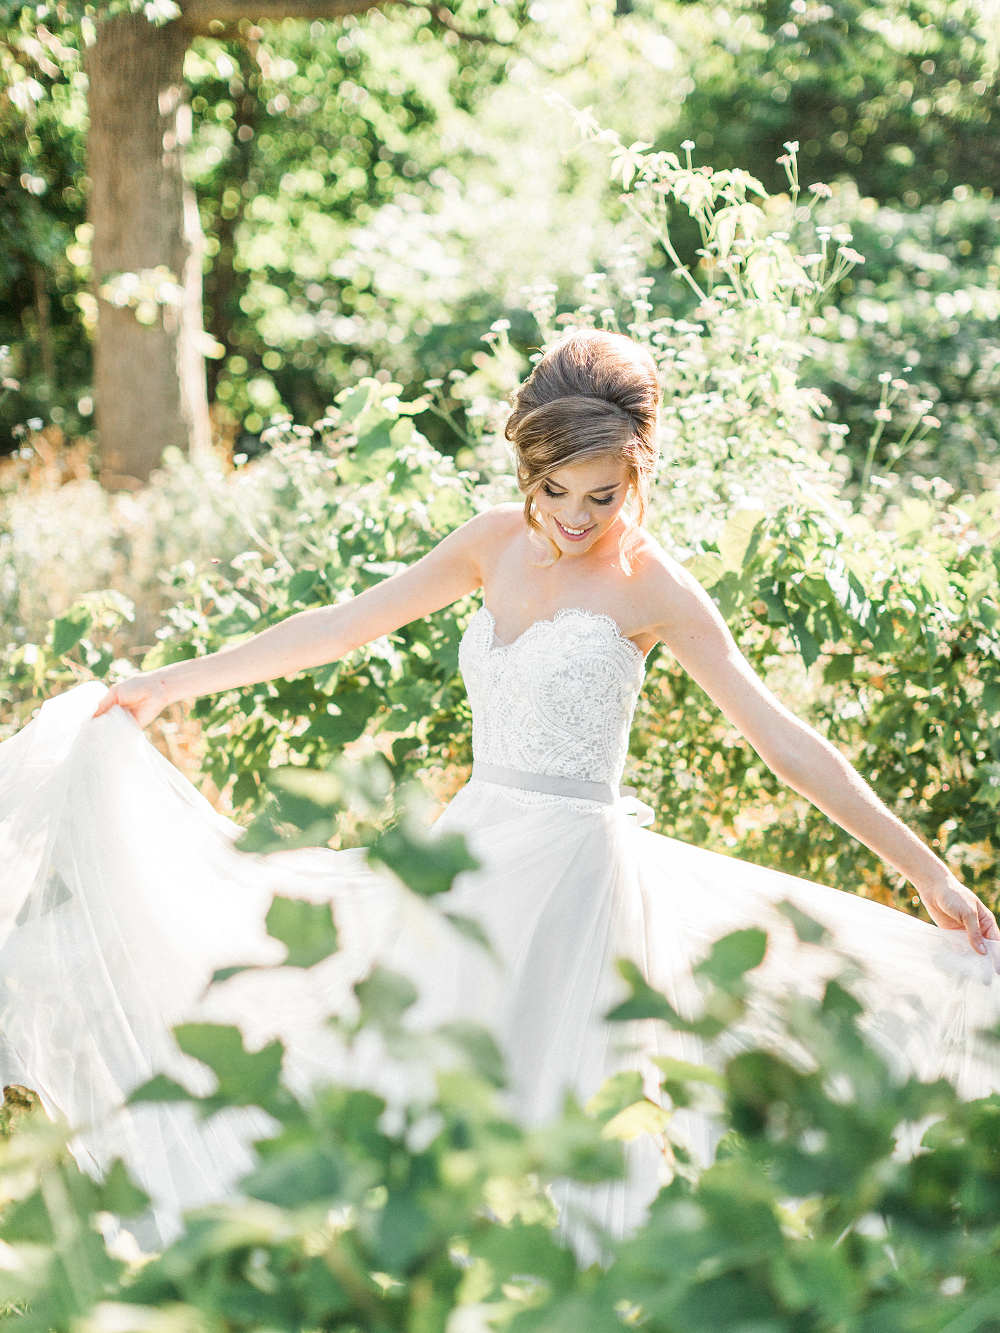 Whimsical Summer Wedding Styled Shoot at Henderson Castle Featured in WeddingDay Magazine Bride Twirling